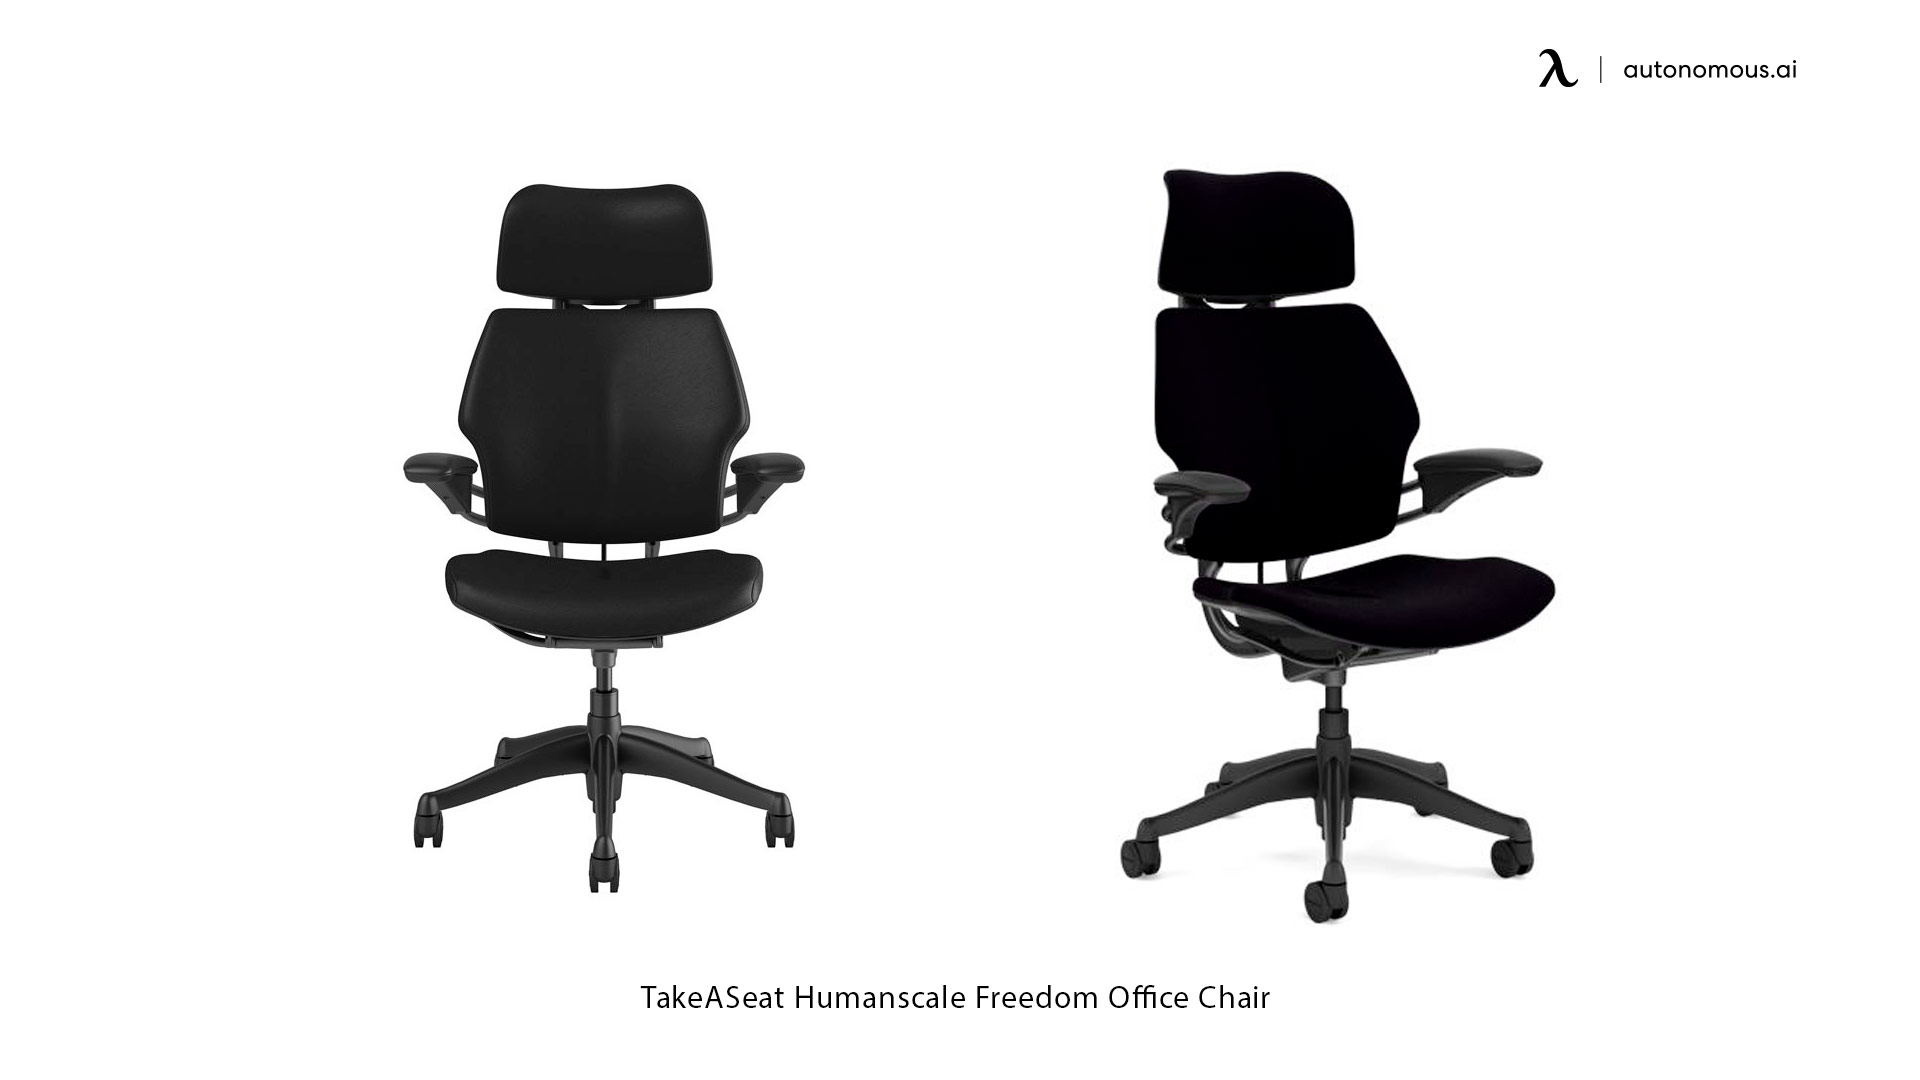 TakeASeat Humanscale Freedom Office Chair